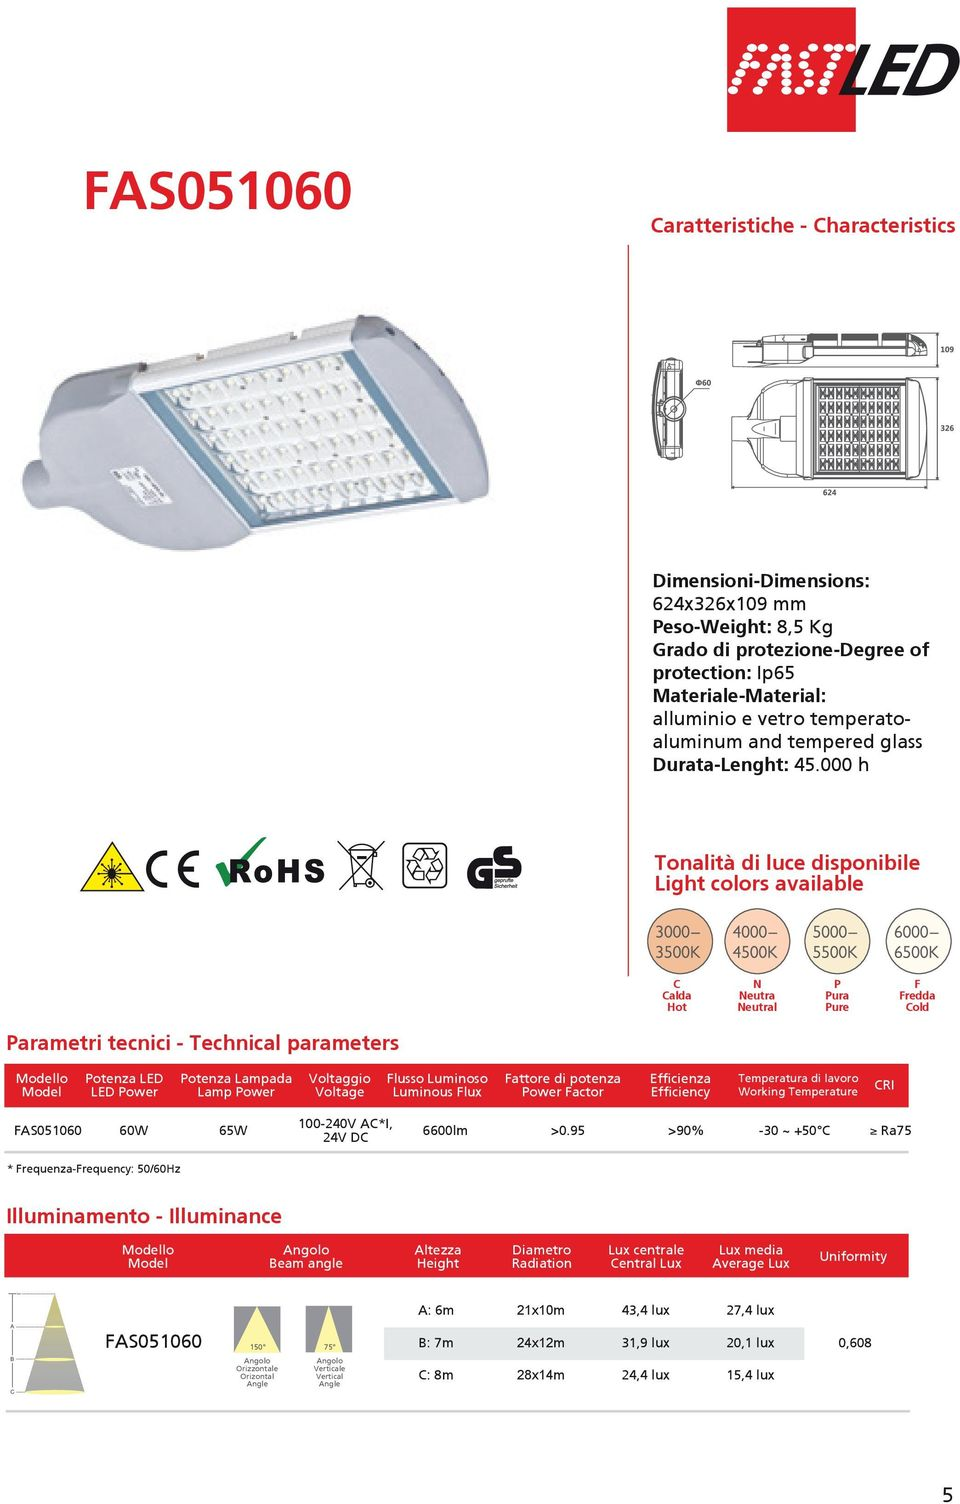 000 h Tonalità di luce disponibile Light colors available C Calda Hot N Neutra Neutral P Pura Pure F Fredda Cold Parametri tecnici - Technical parameters Potenza LED LED Power Potenza Lampada Lamp